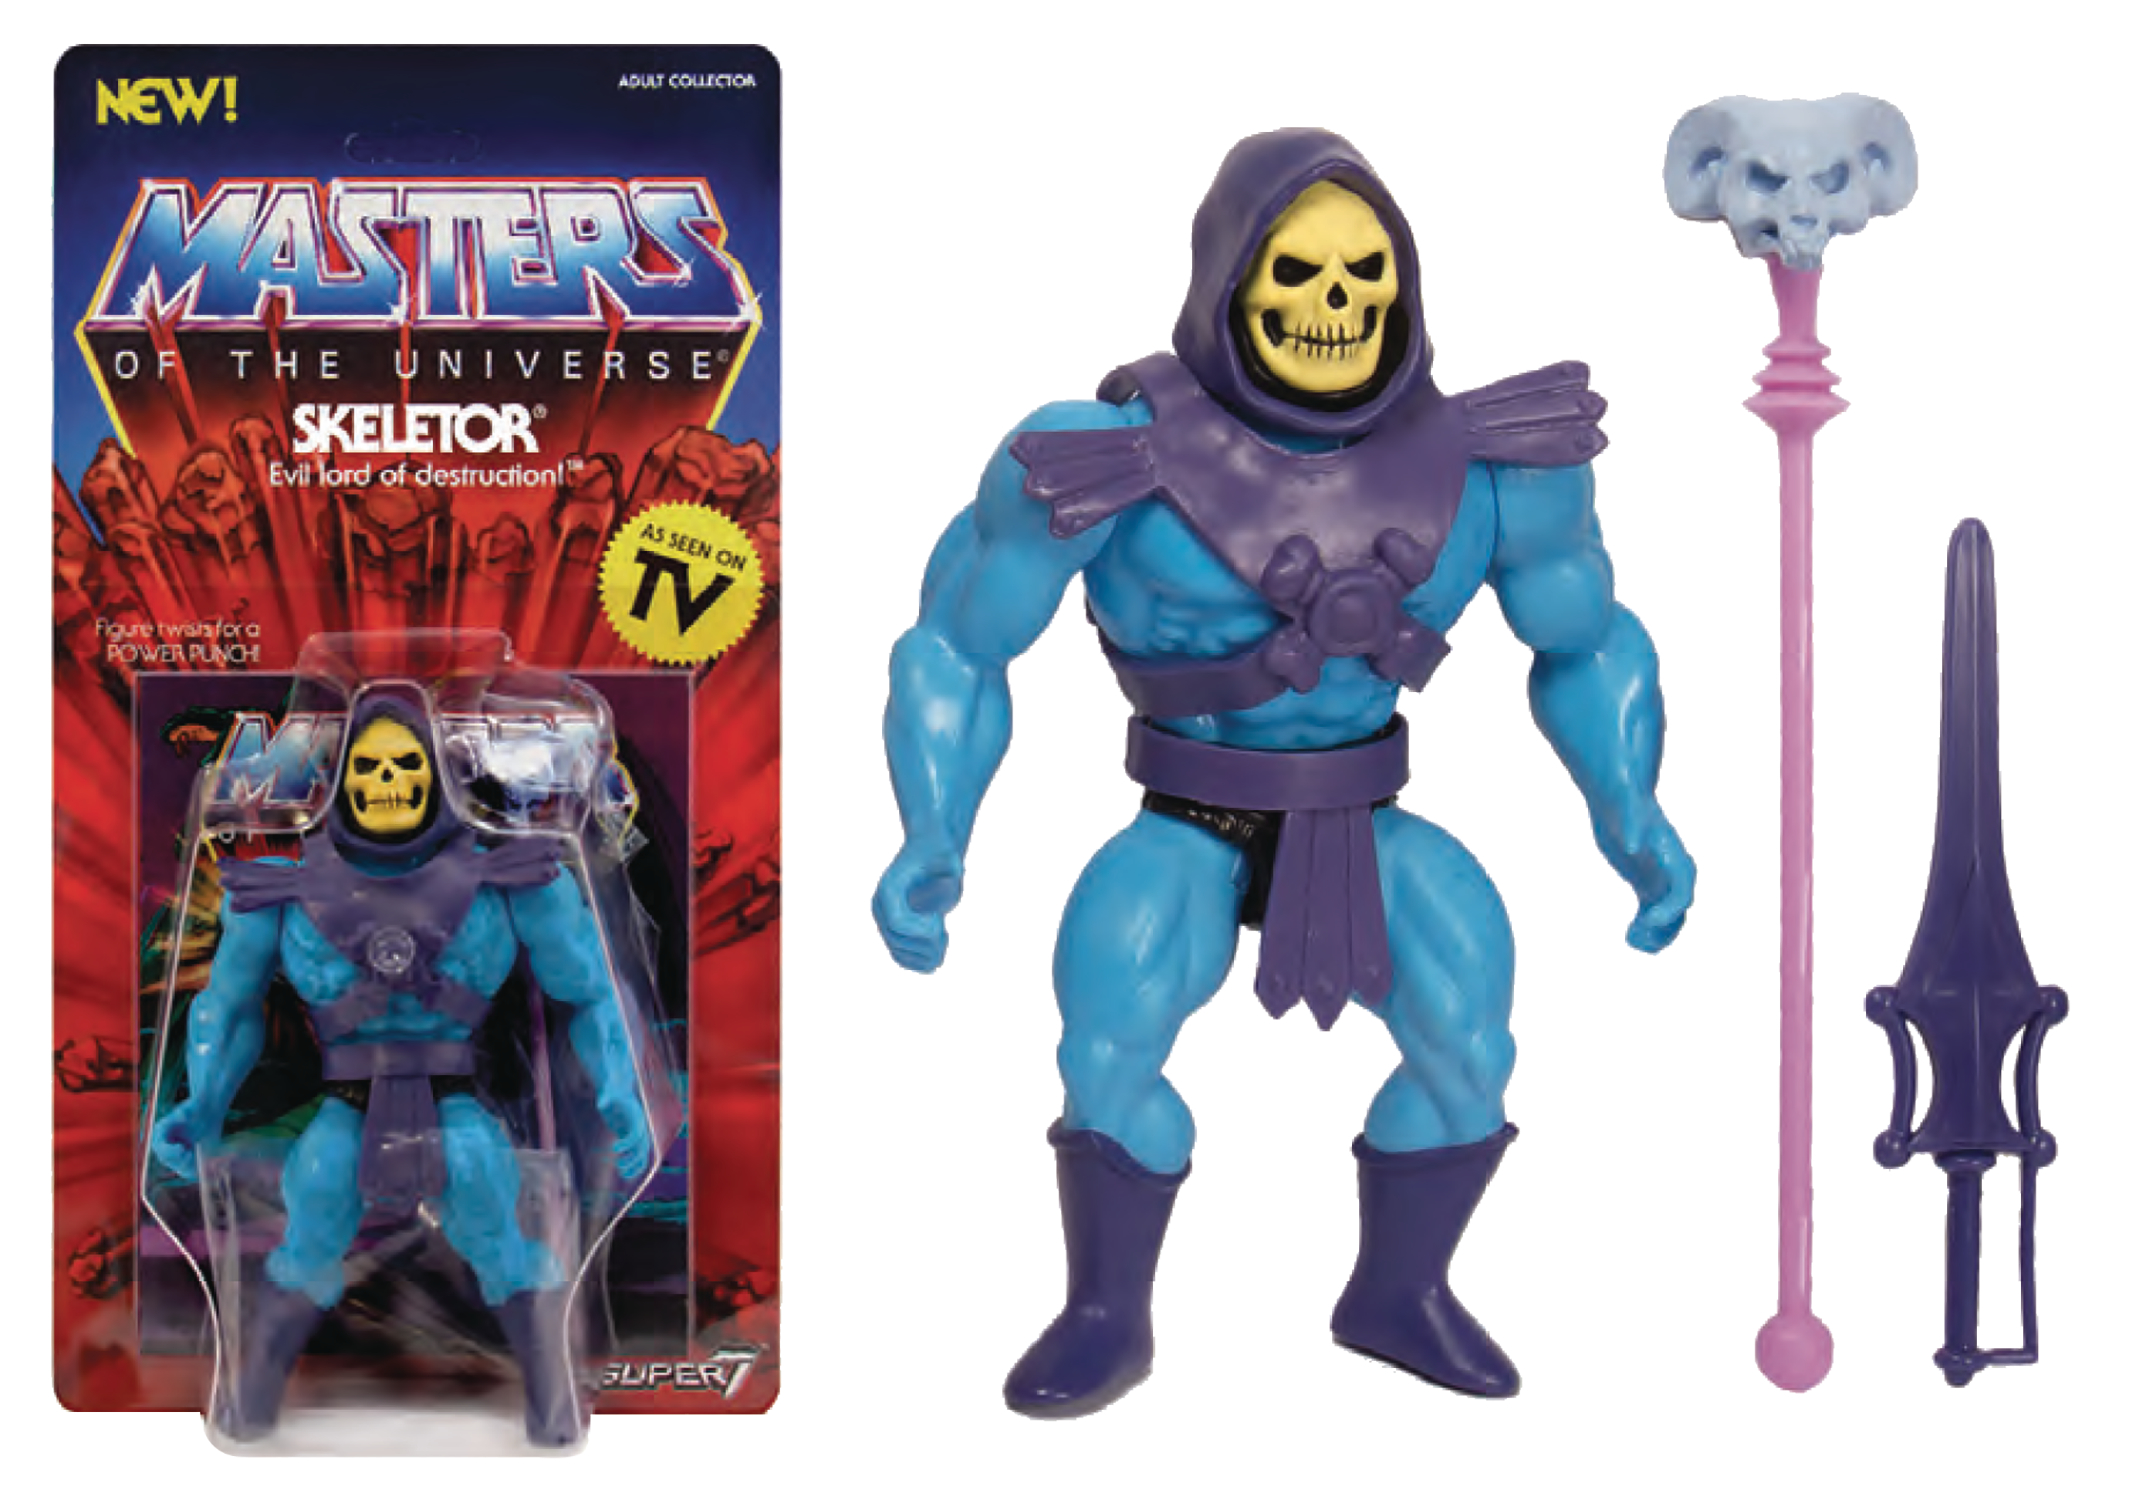 MOTU 5.5IN VINTAGE SKELETOR ACTION FIGURE